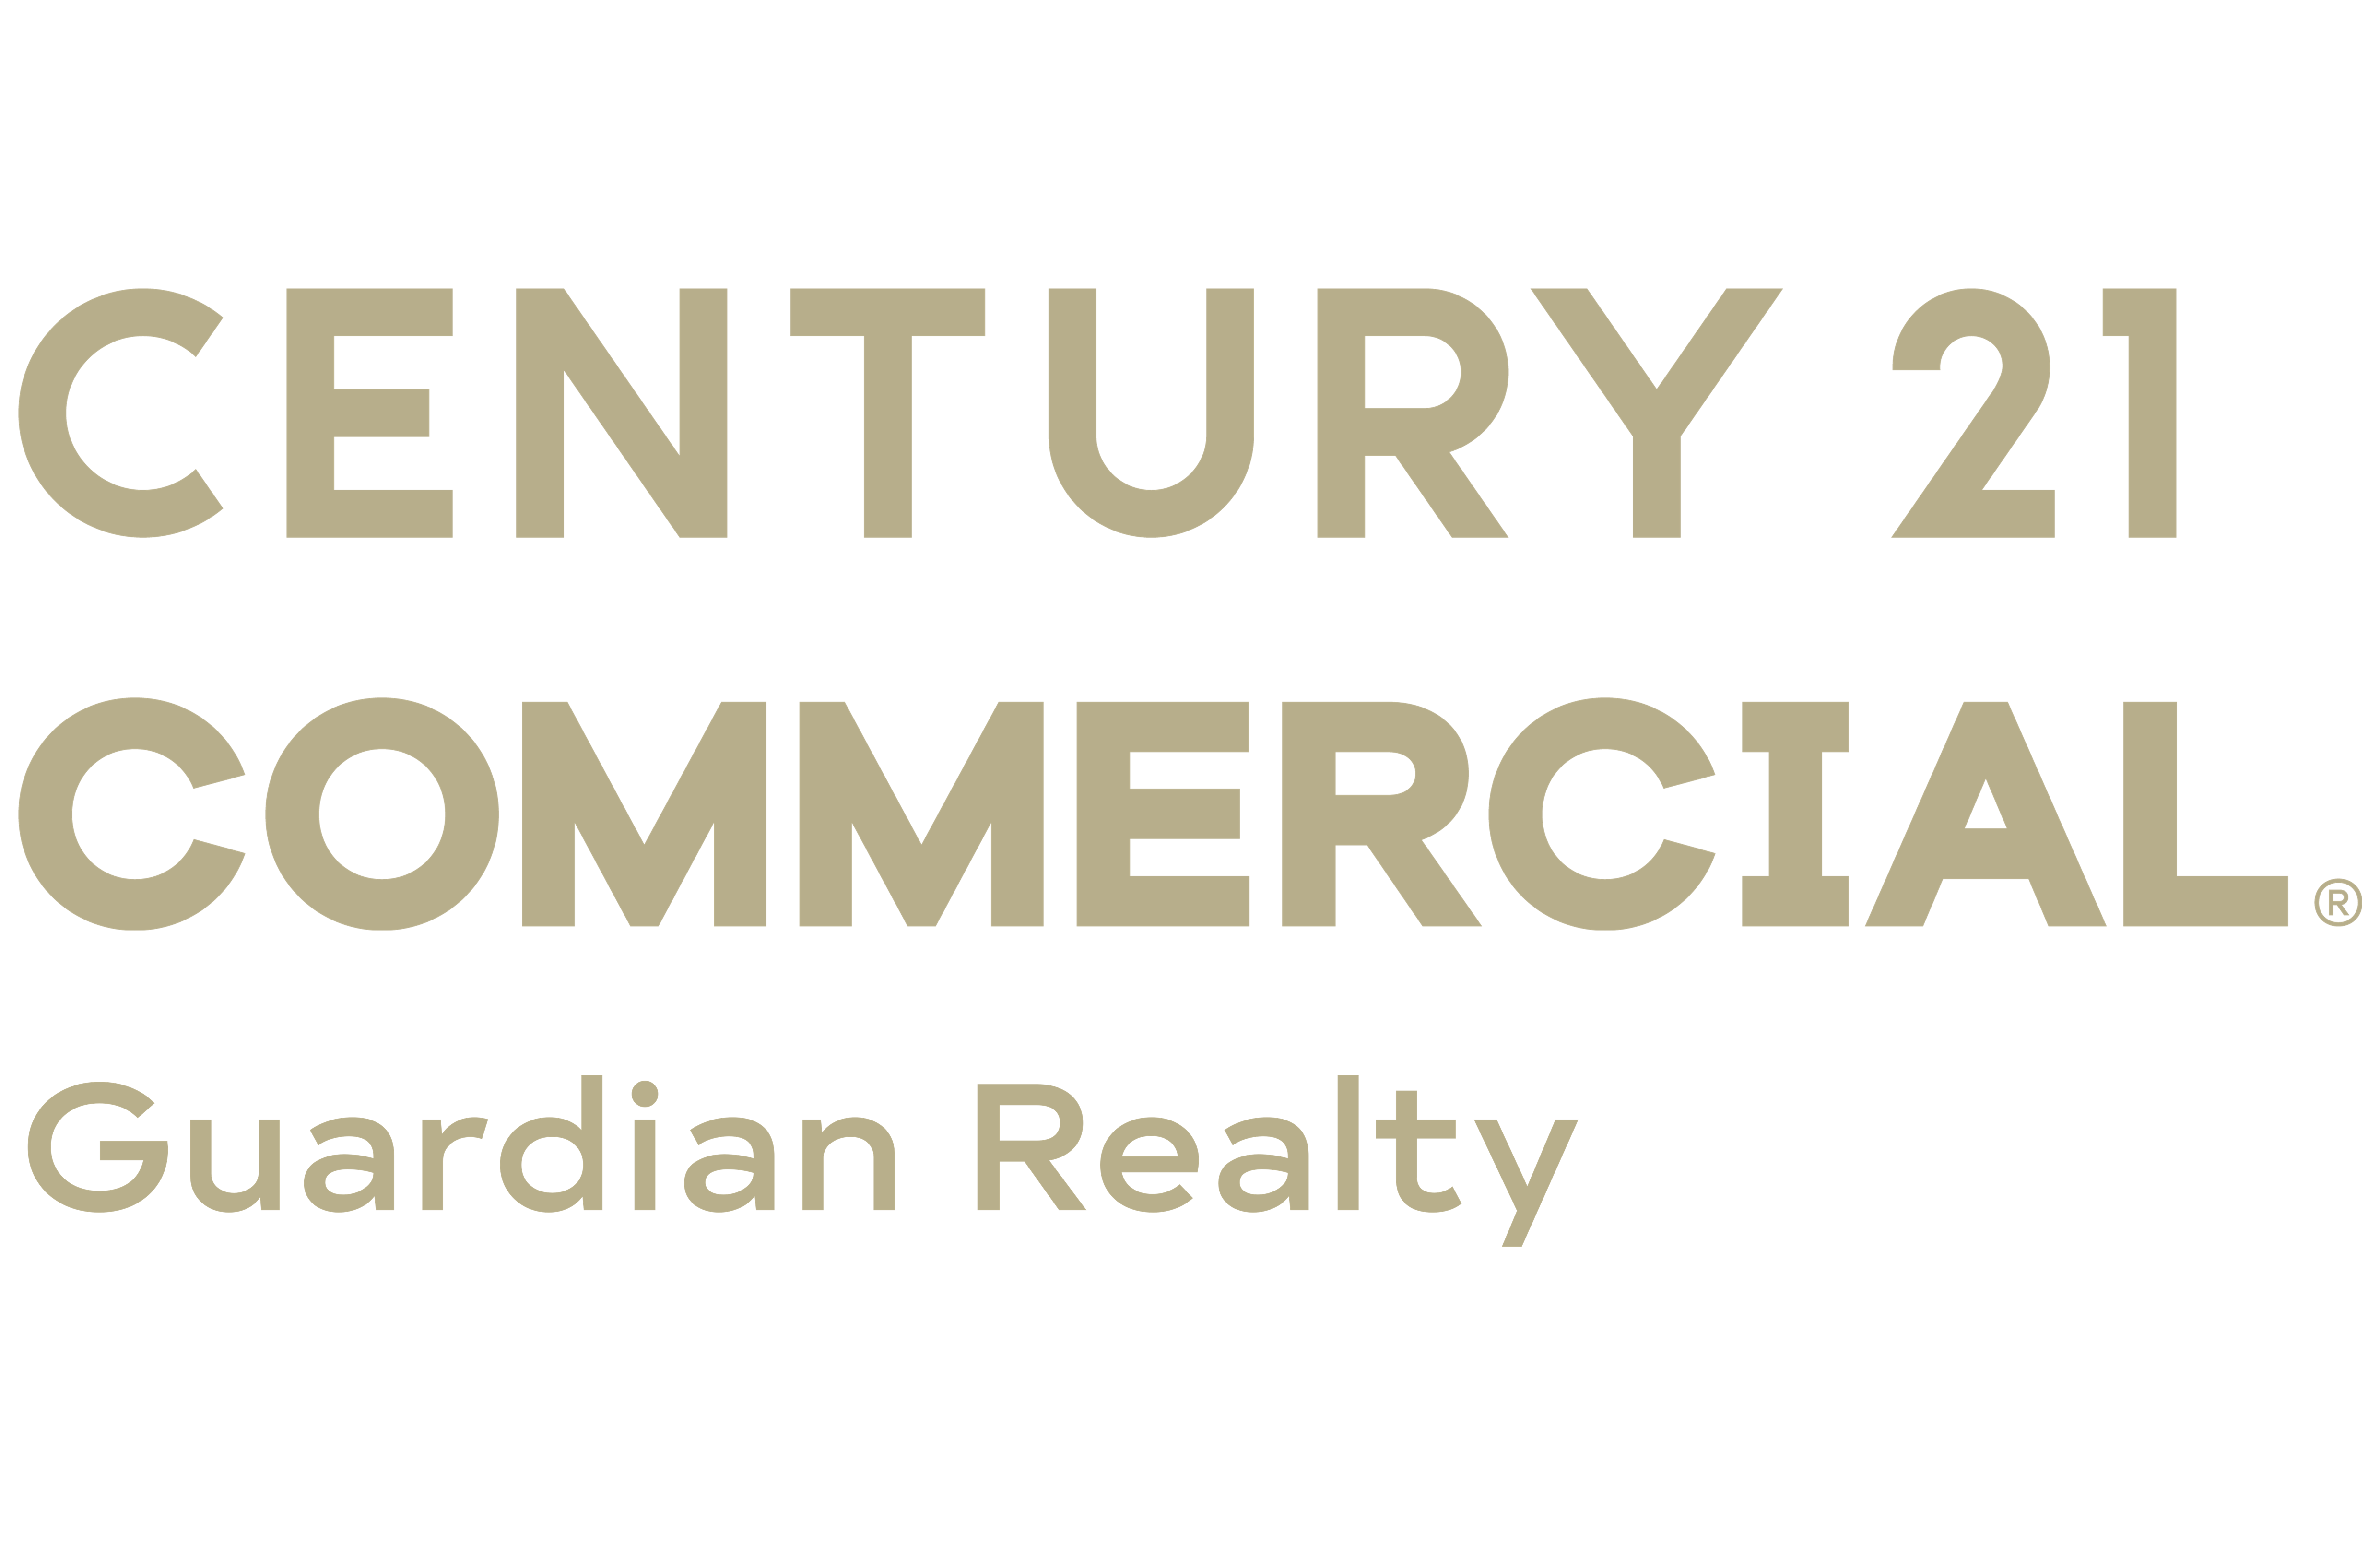 Peter Spinella of CENTURY 21 Guardian Realty logo